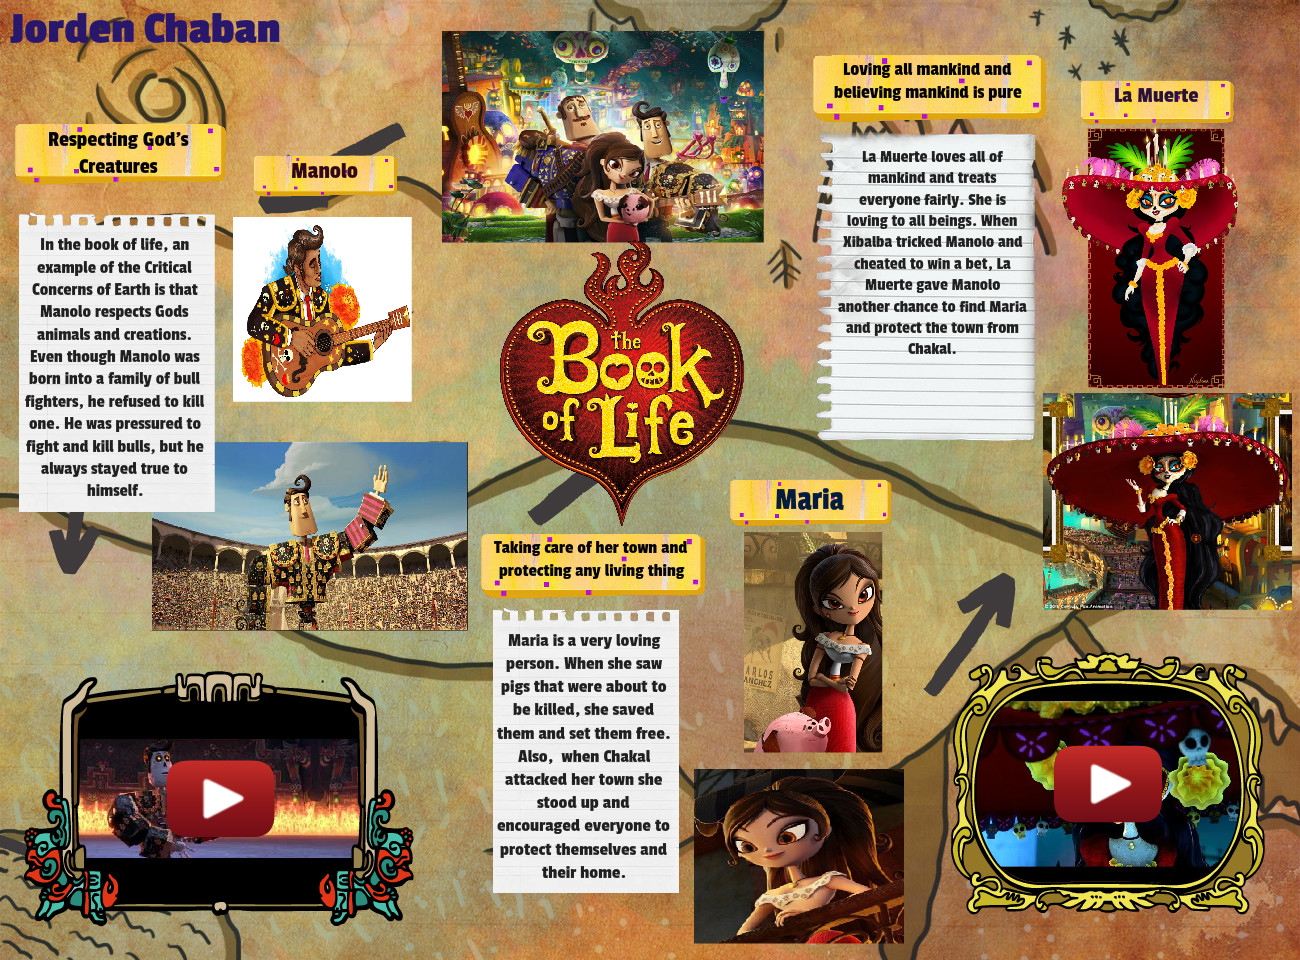 [2015] Jorden Chaban (2nd Pd. Spanish I 15-16): Book of Life